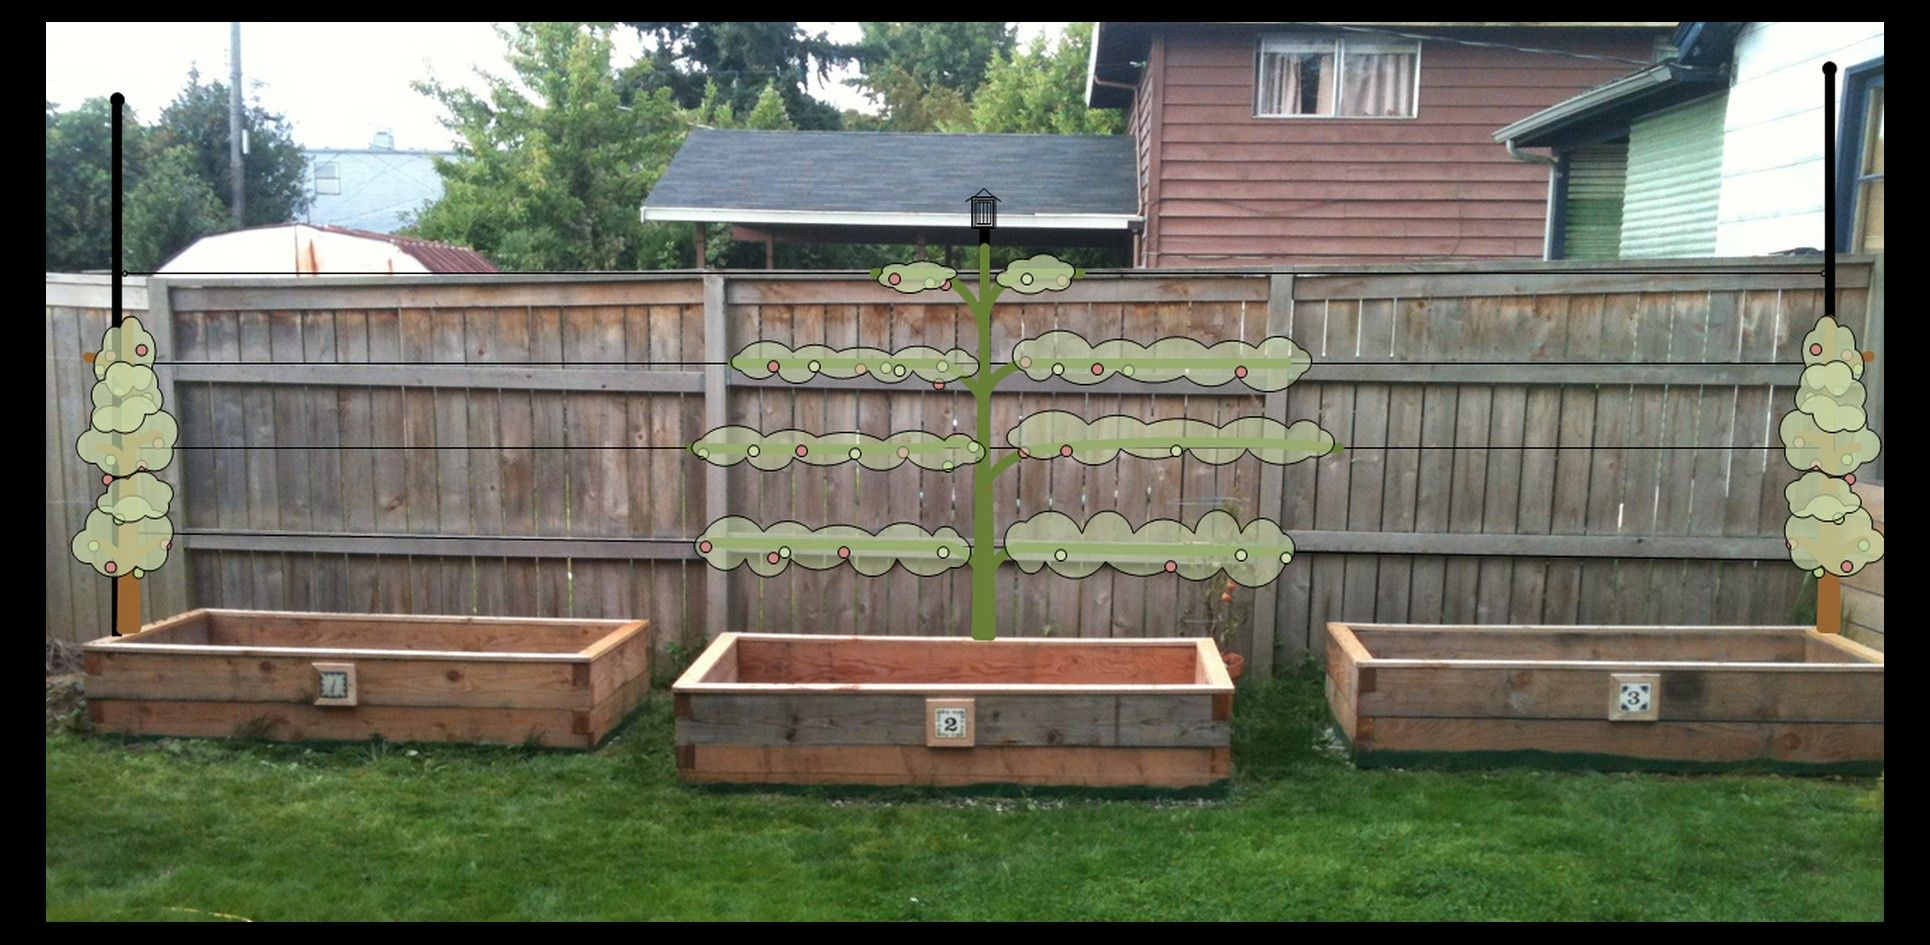 Small Crop Of Fence Garden Planters